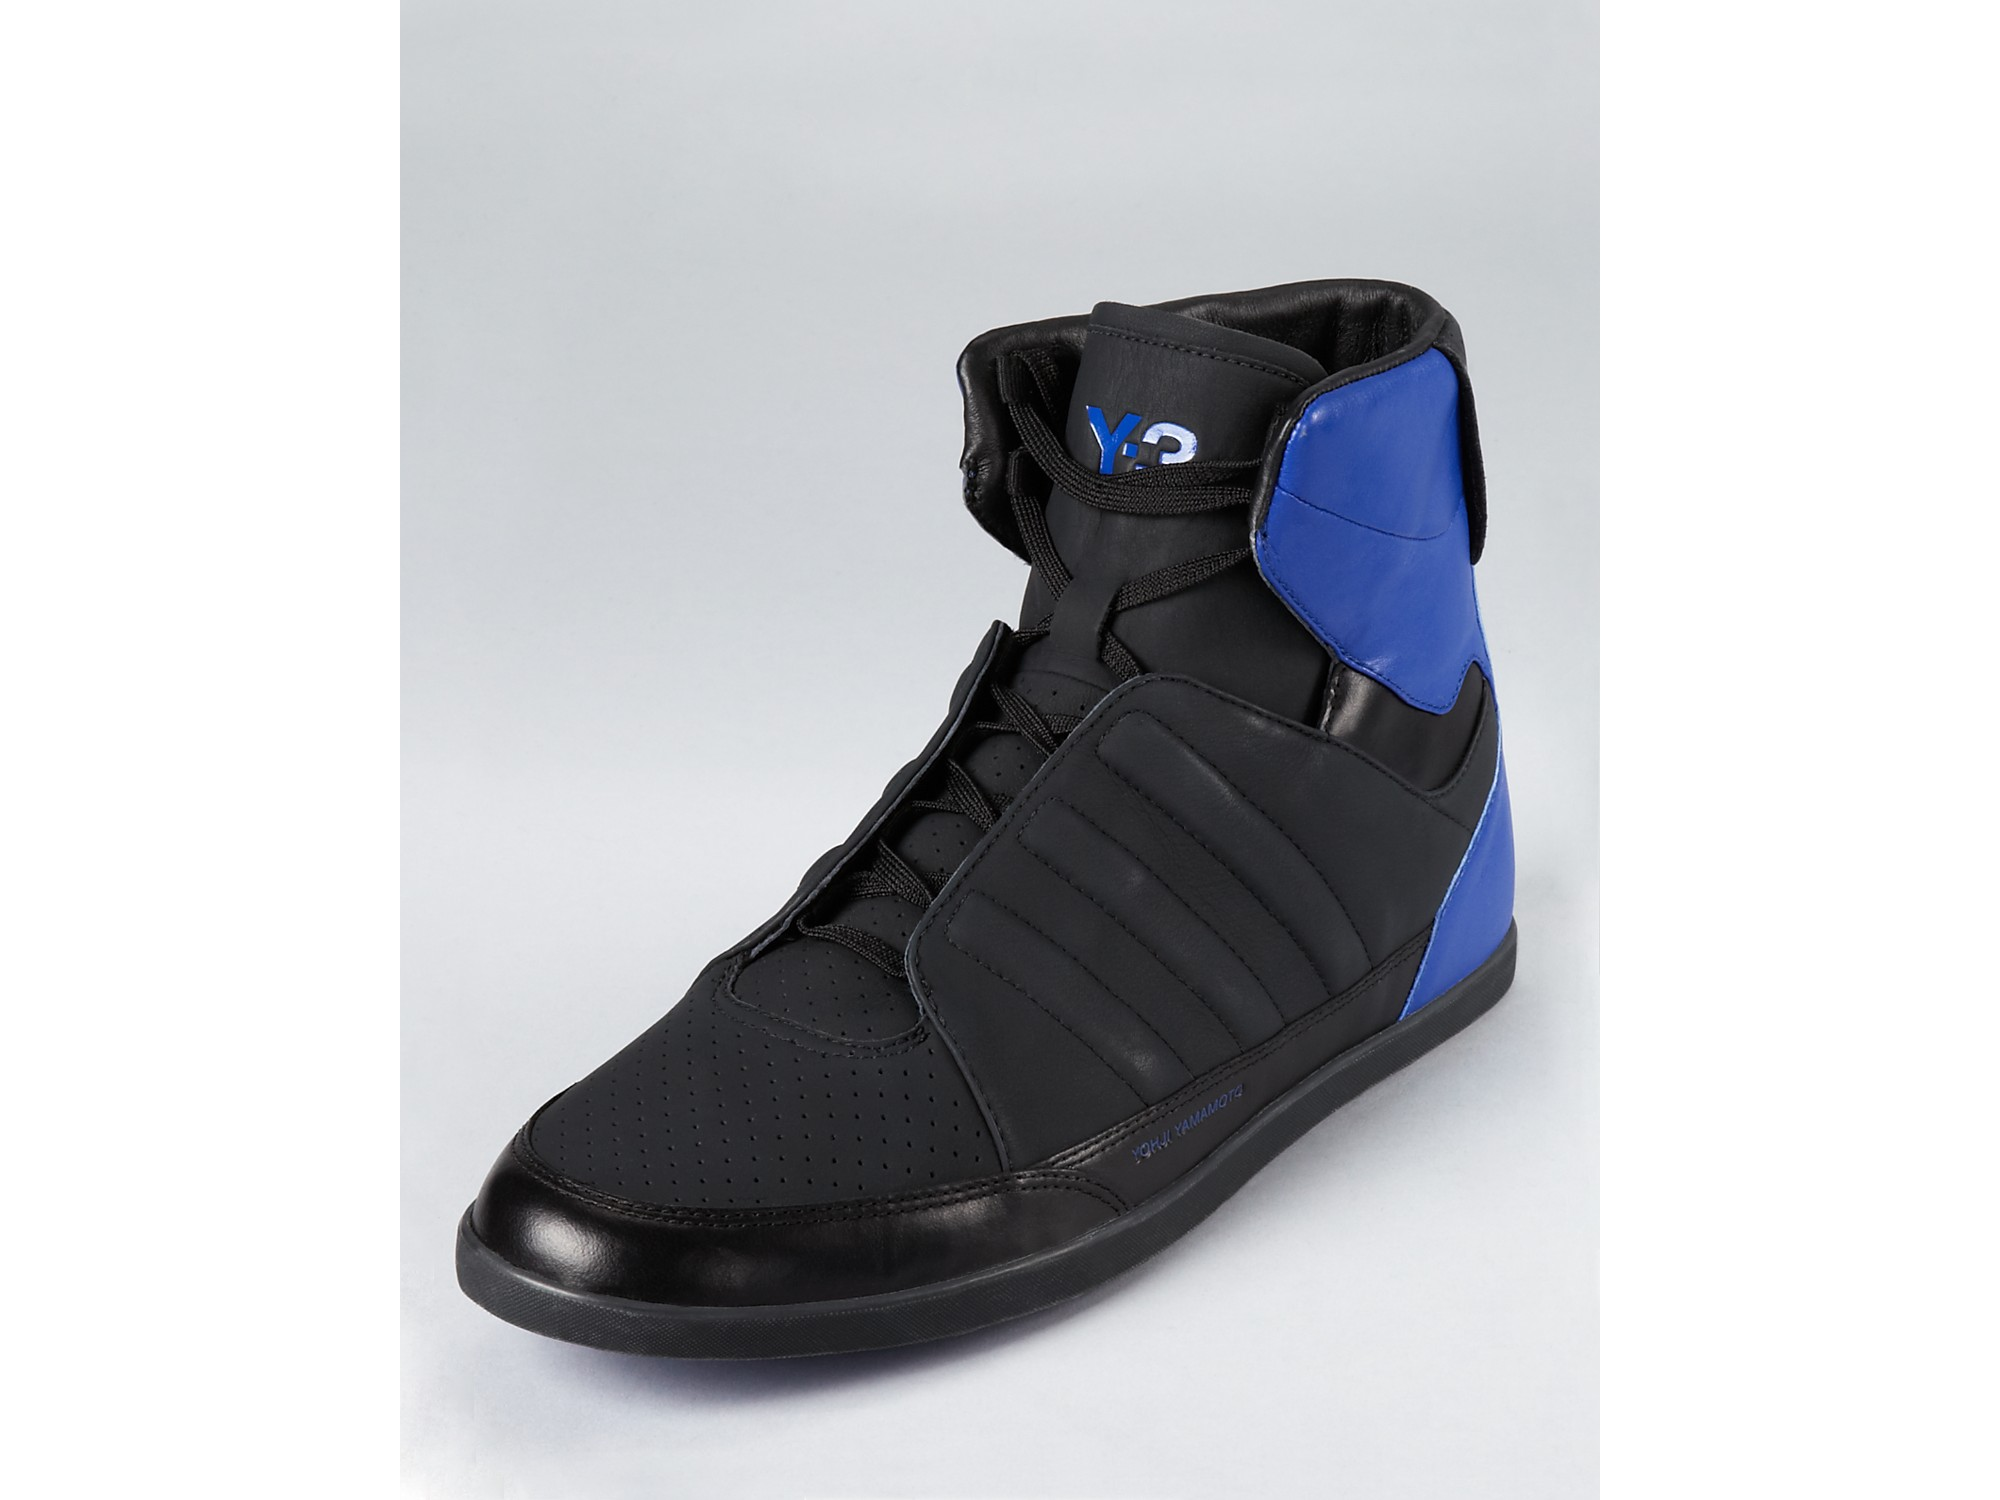 1728398e37dc0 Lyst - Y-3 Honja Hightop Sneakers in Black for Men